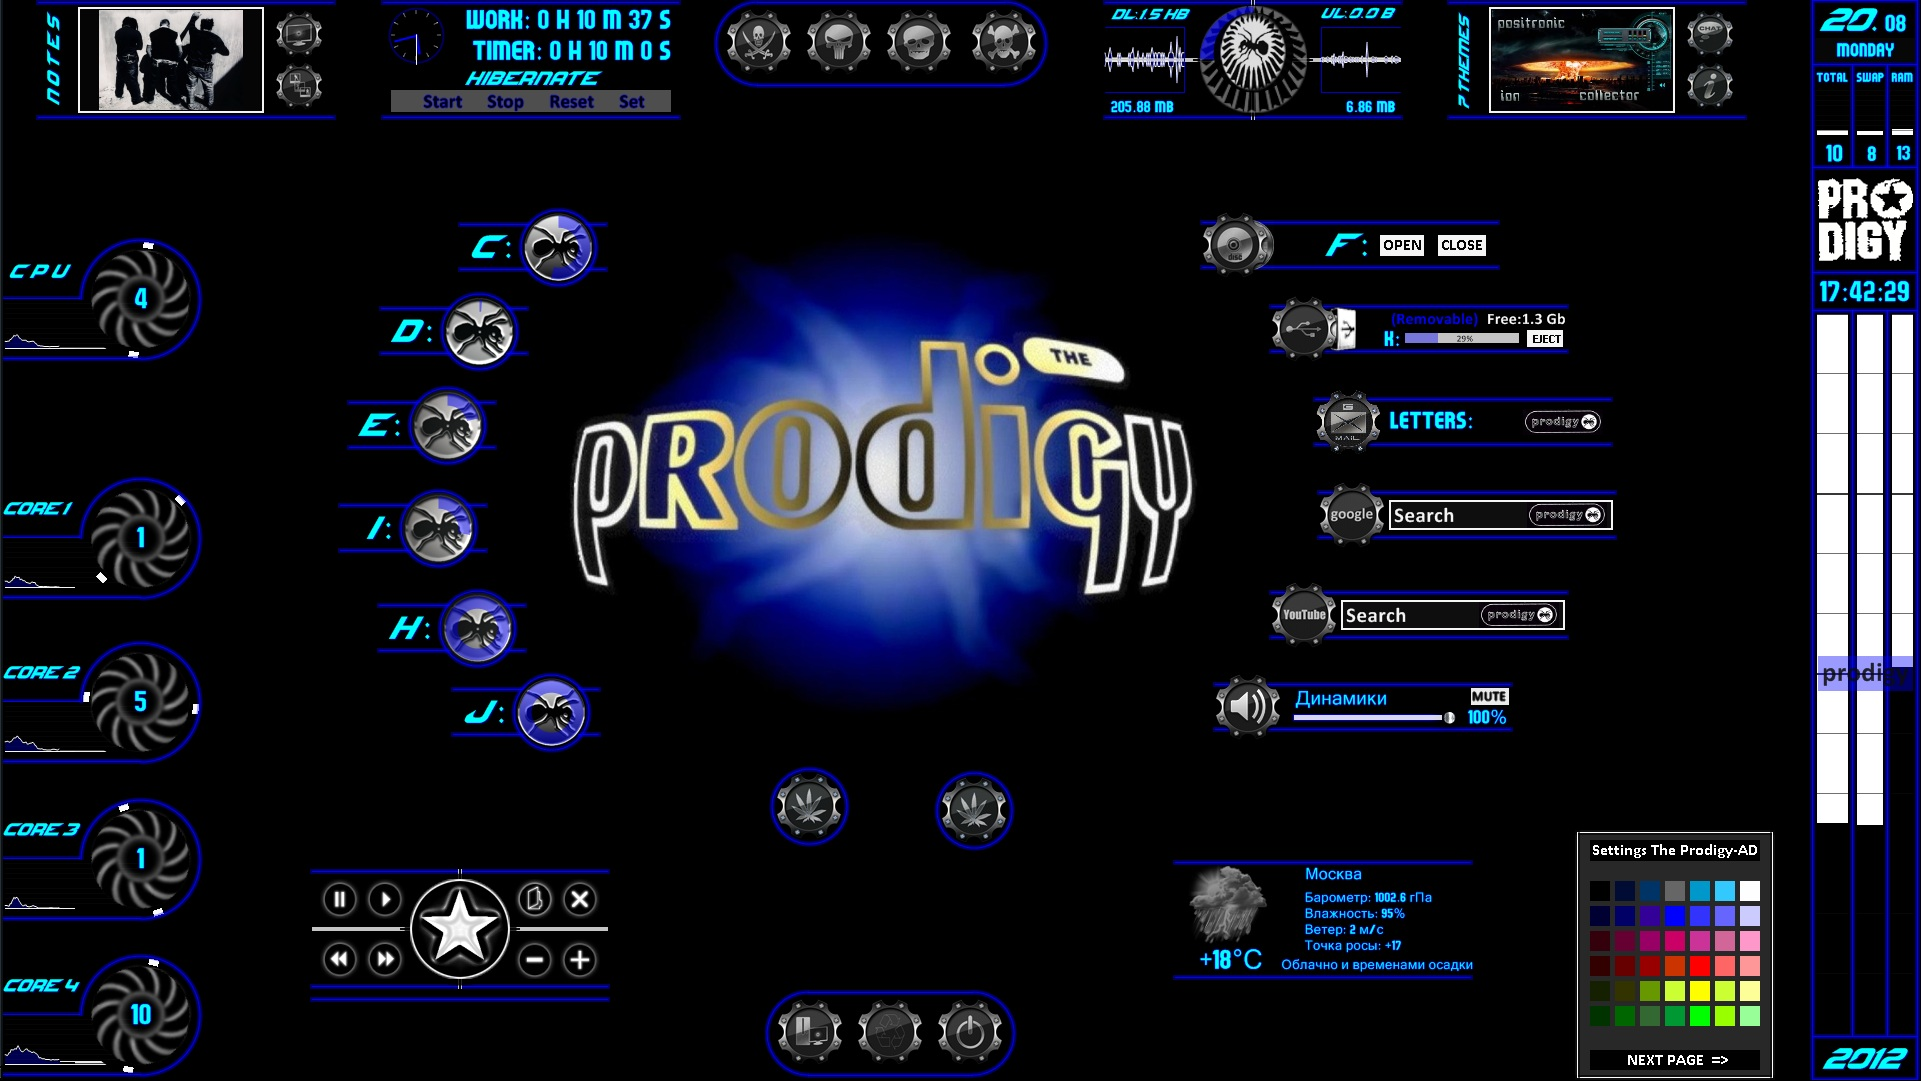 The PRODIGY-AD